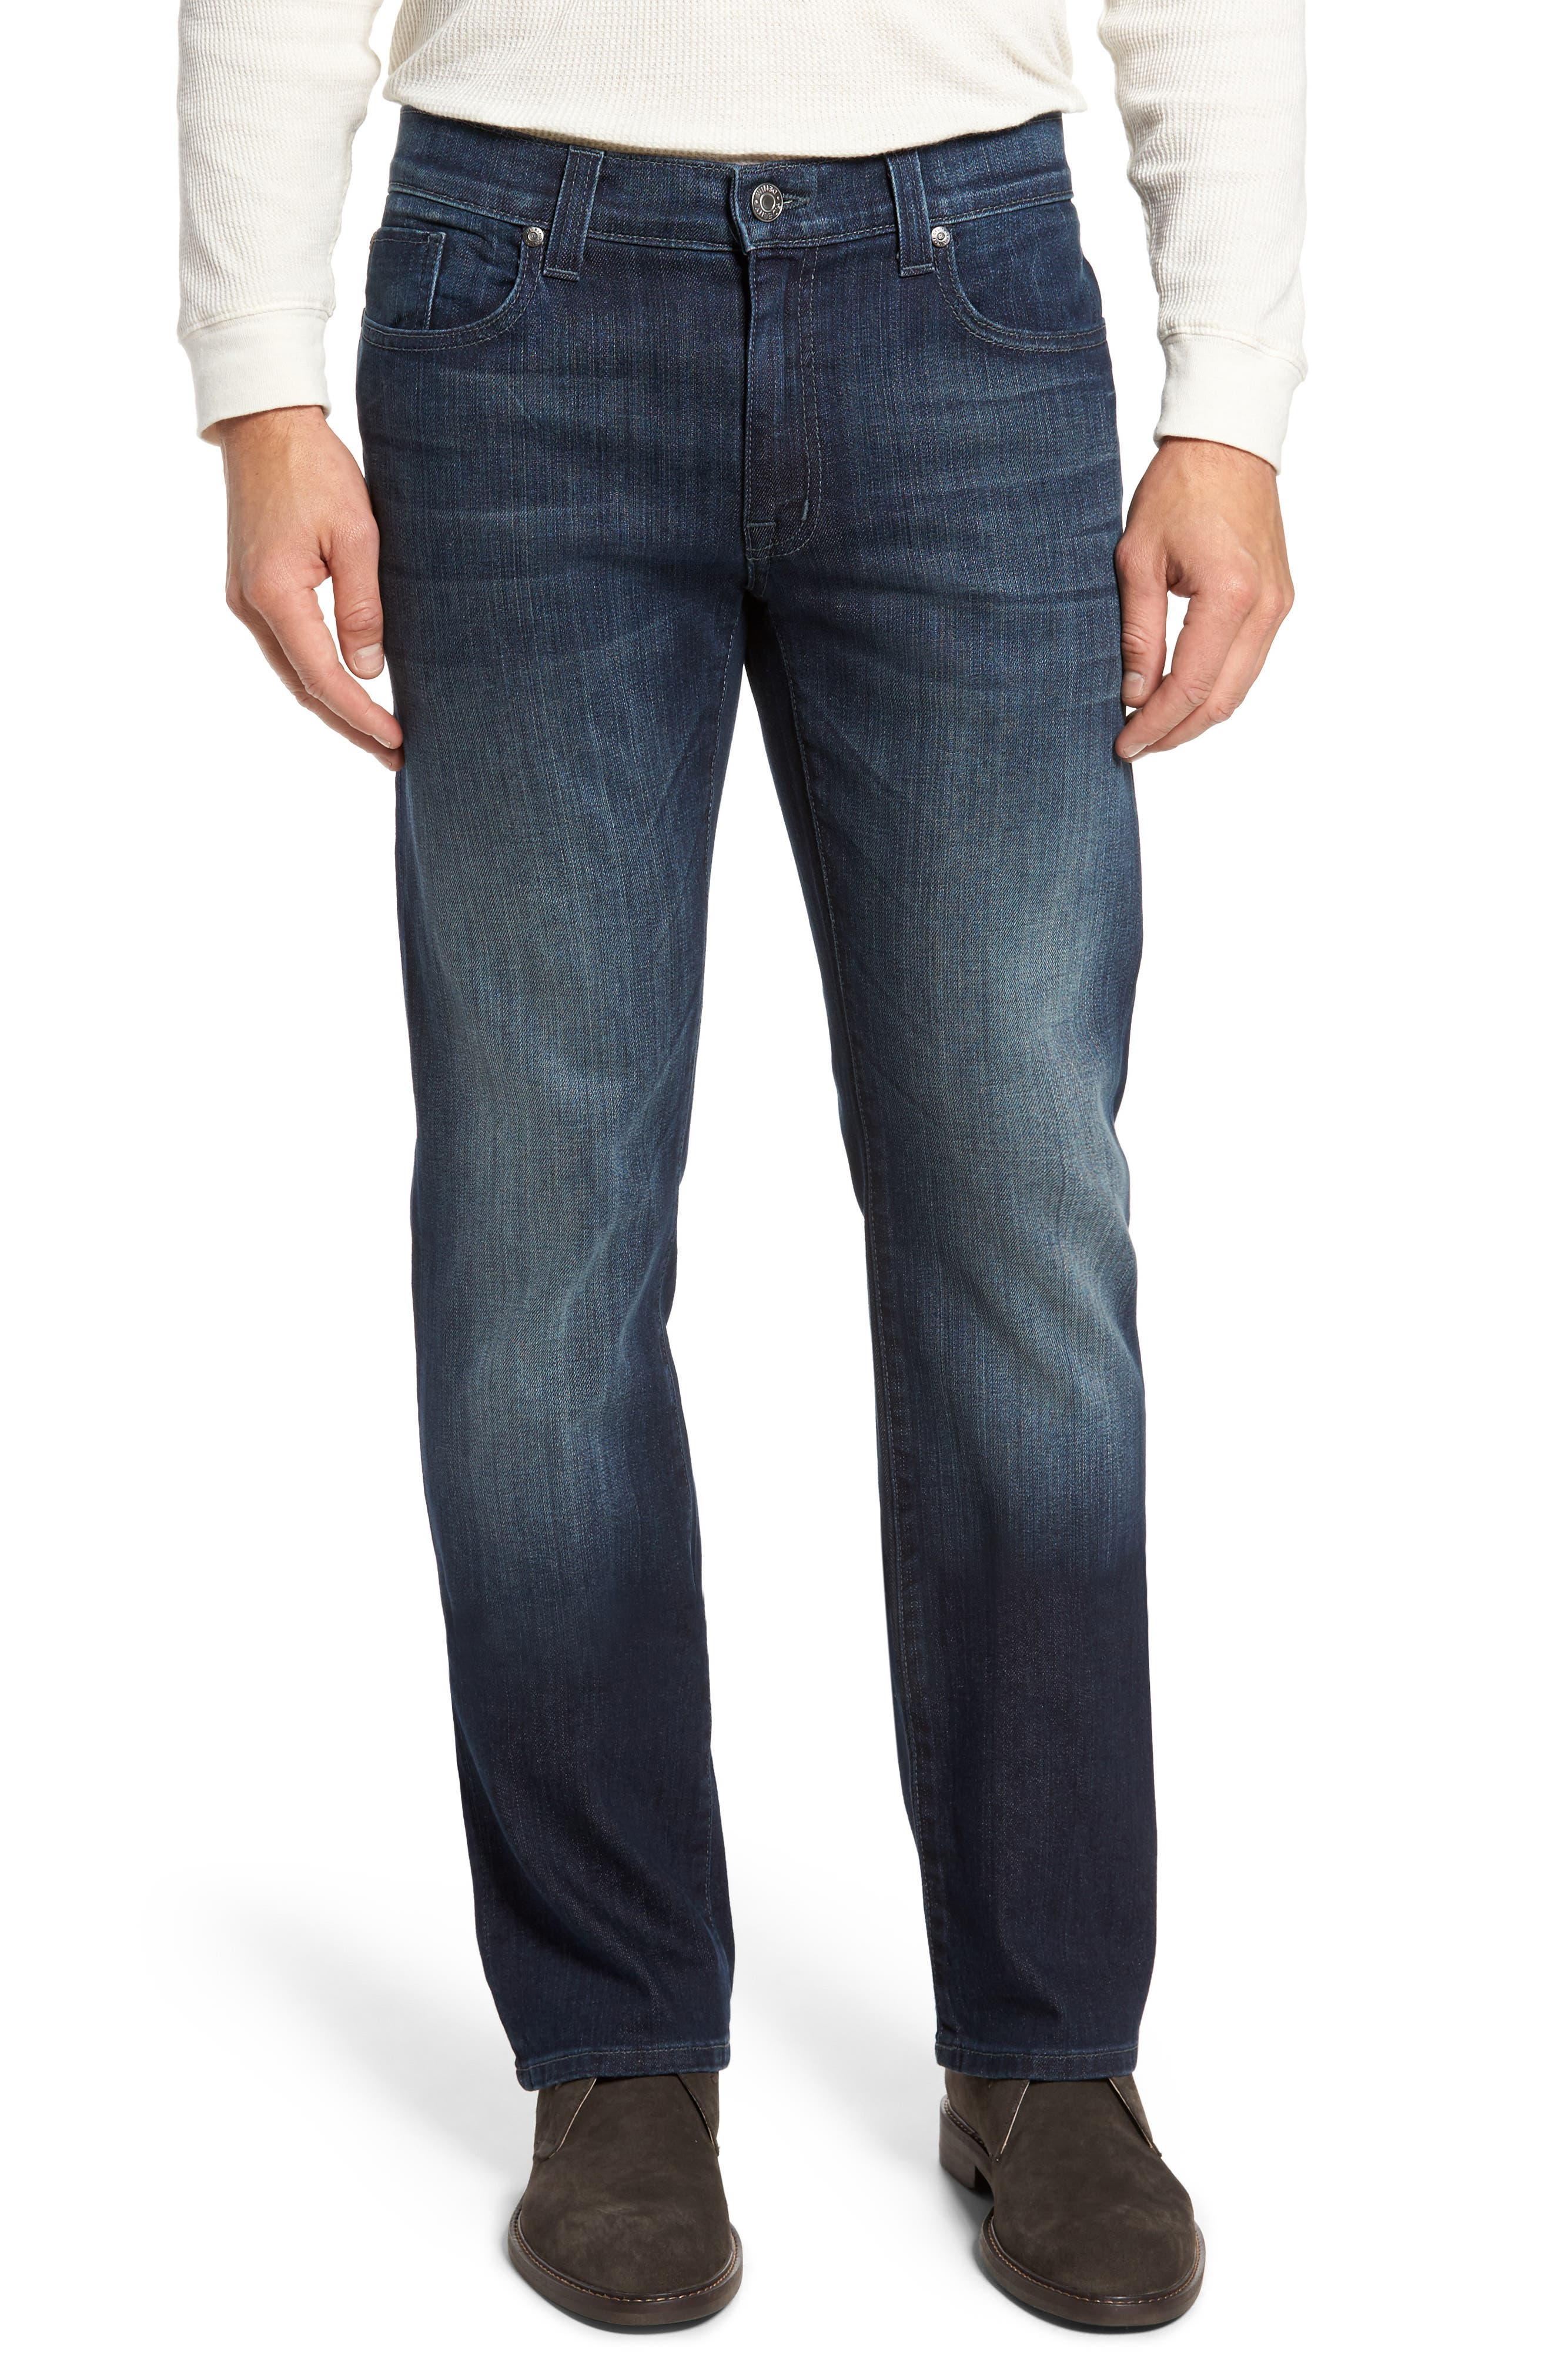 50-11 Relaxed Fit Jeans,                         Main,                         color, Militia Blue